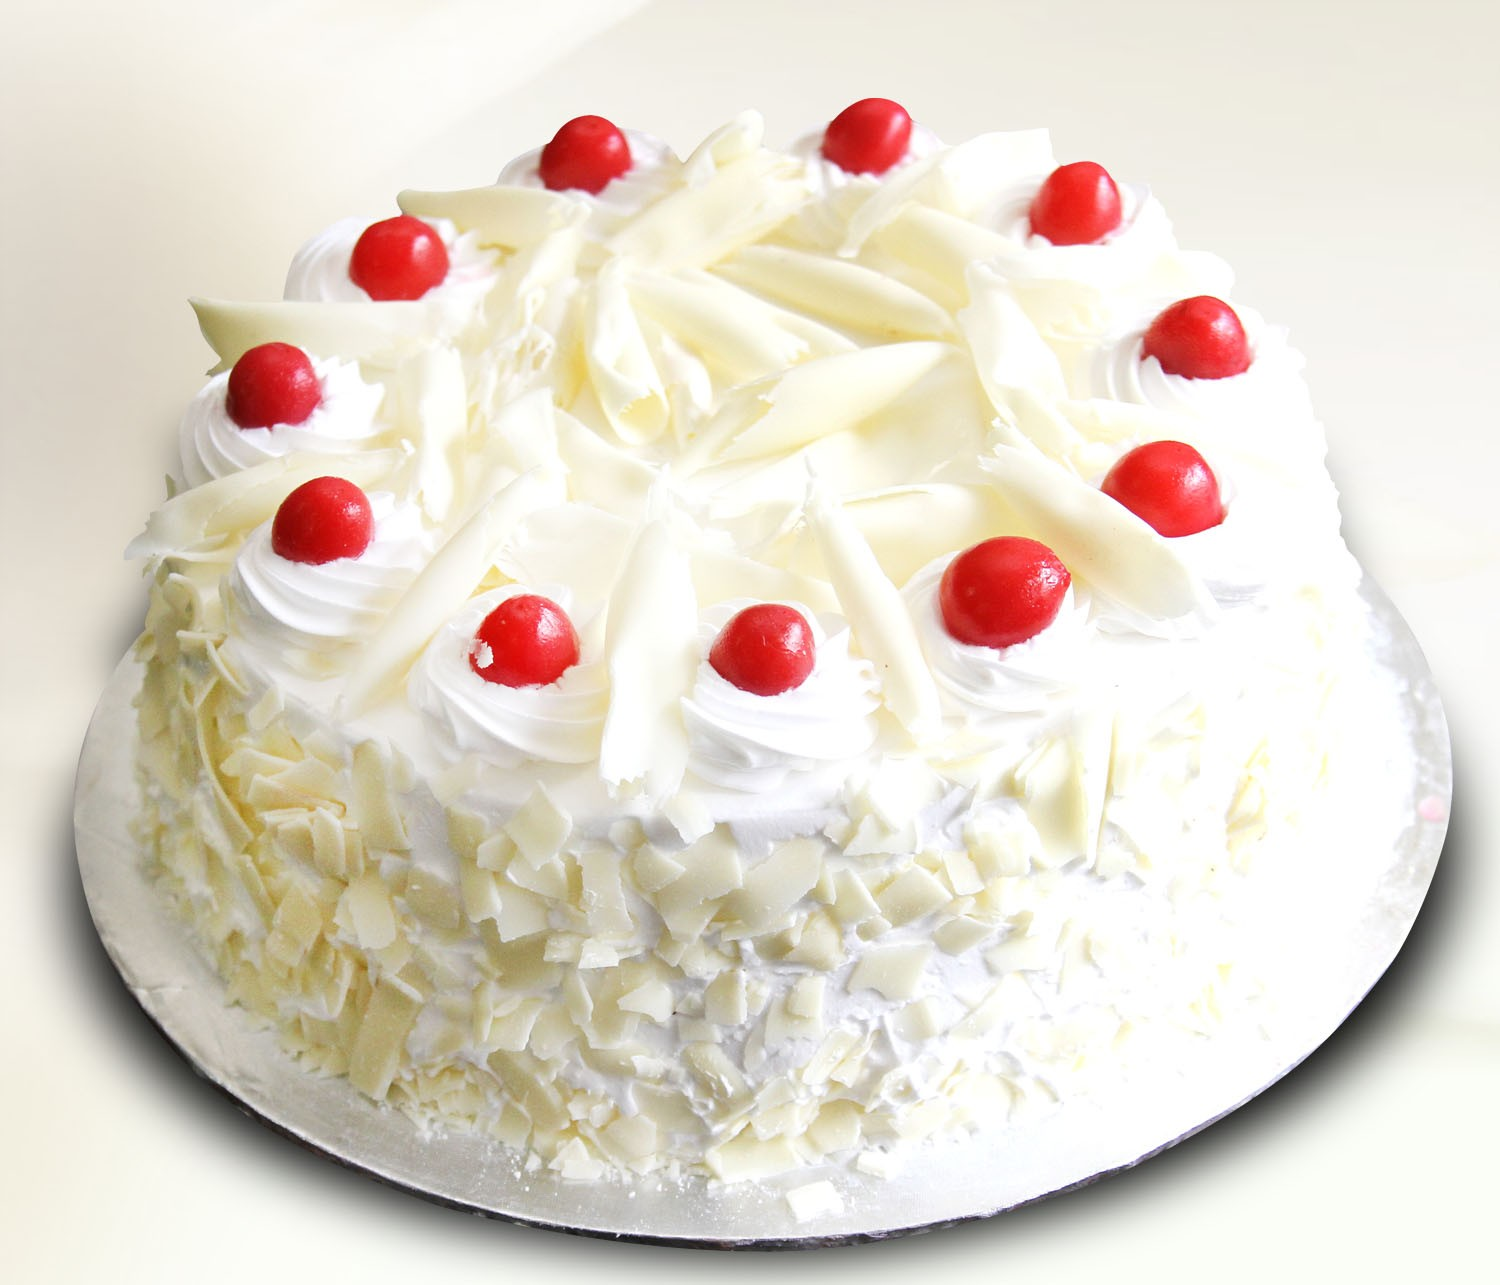 Cake Delivery At Home We Offer White Forest Cakes Affordable